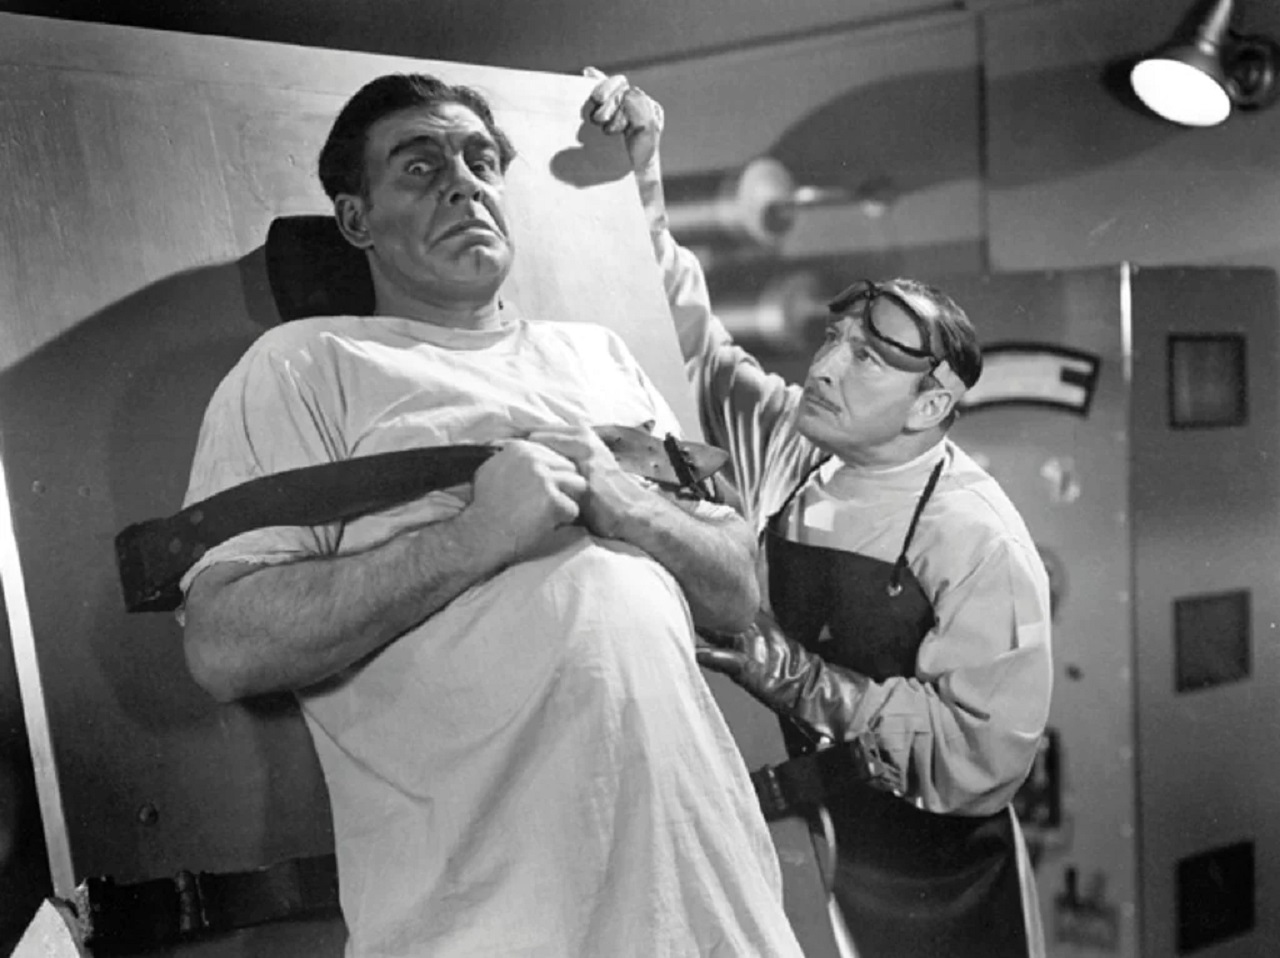 Lionel Atwill prepares to experiments on Lon Chaney Jr in Man-Made Monster (1941)